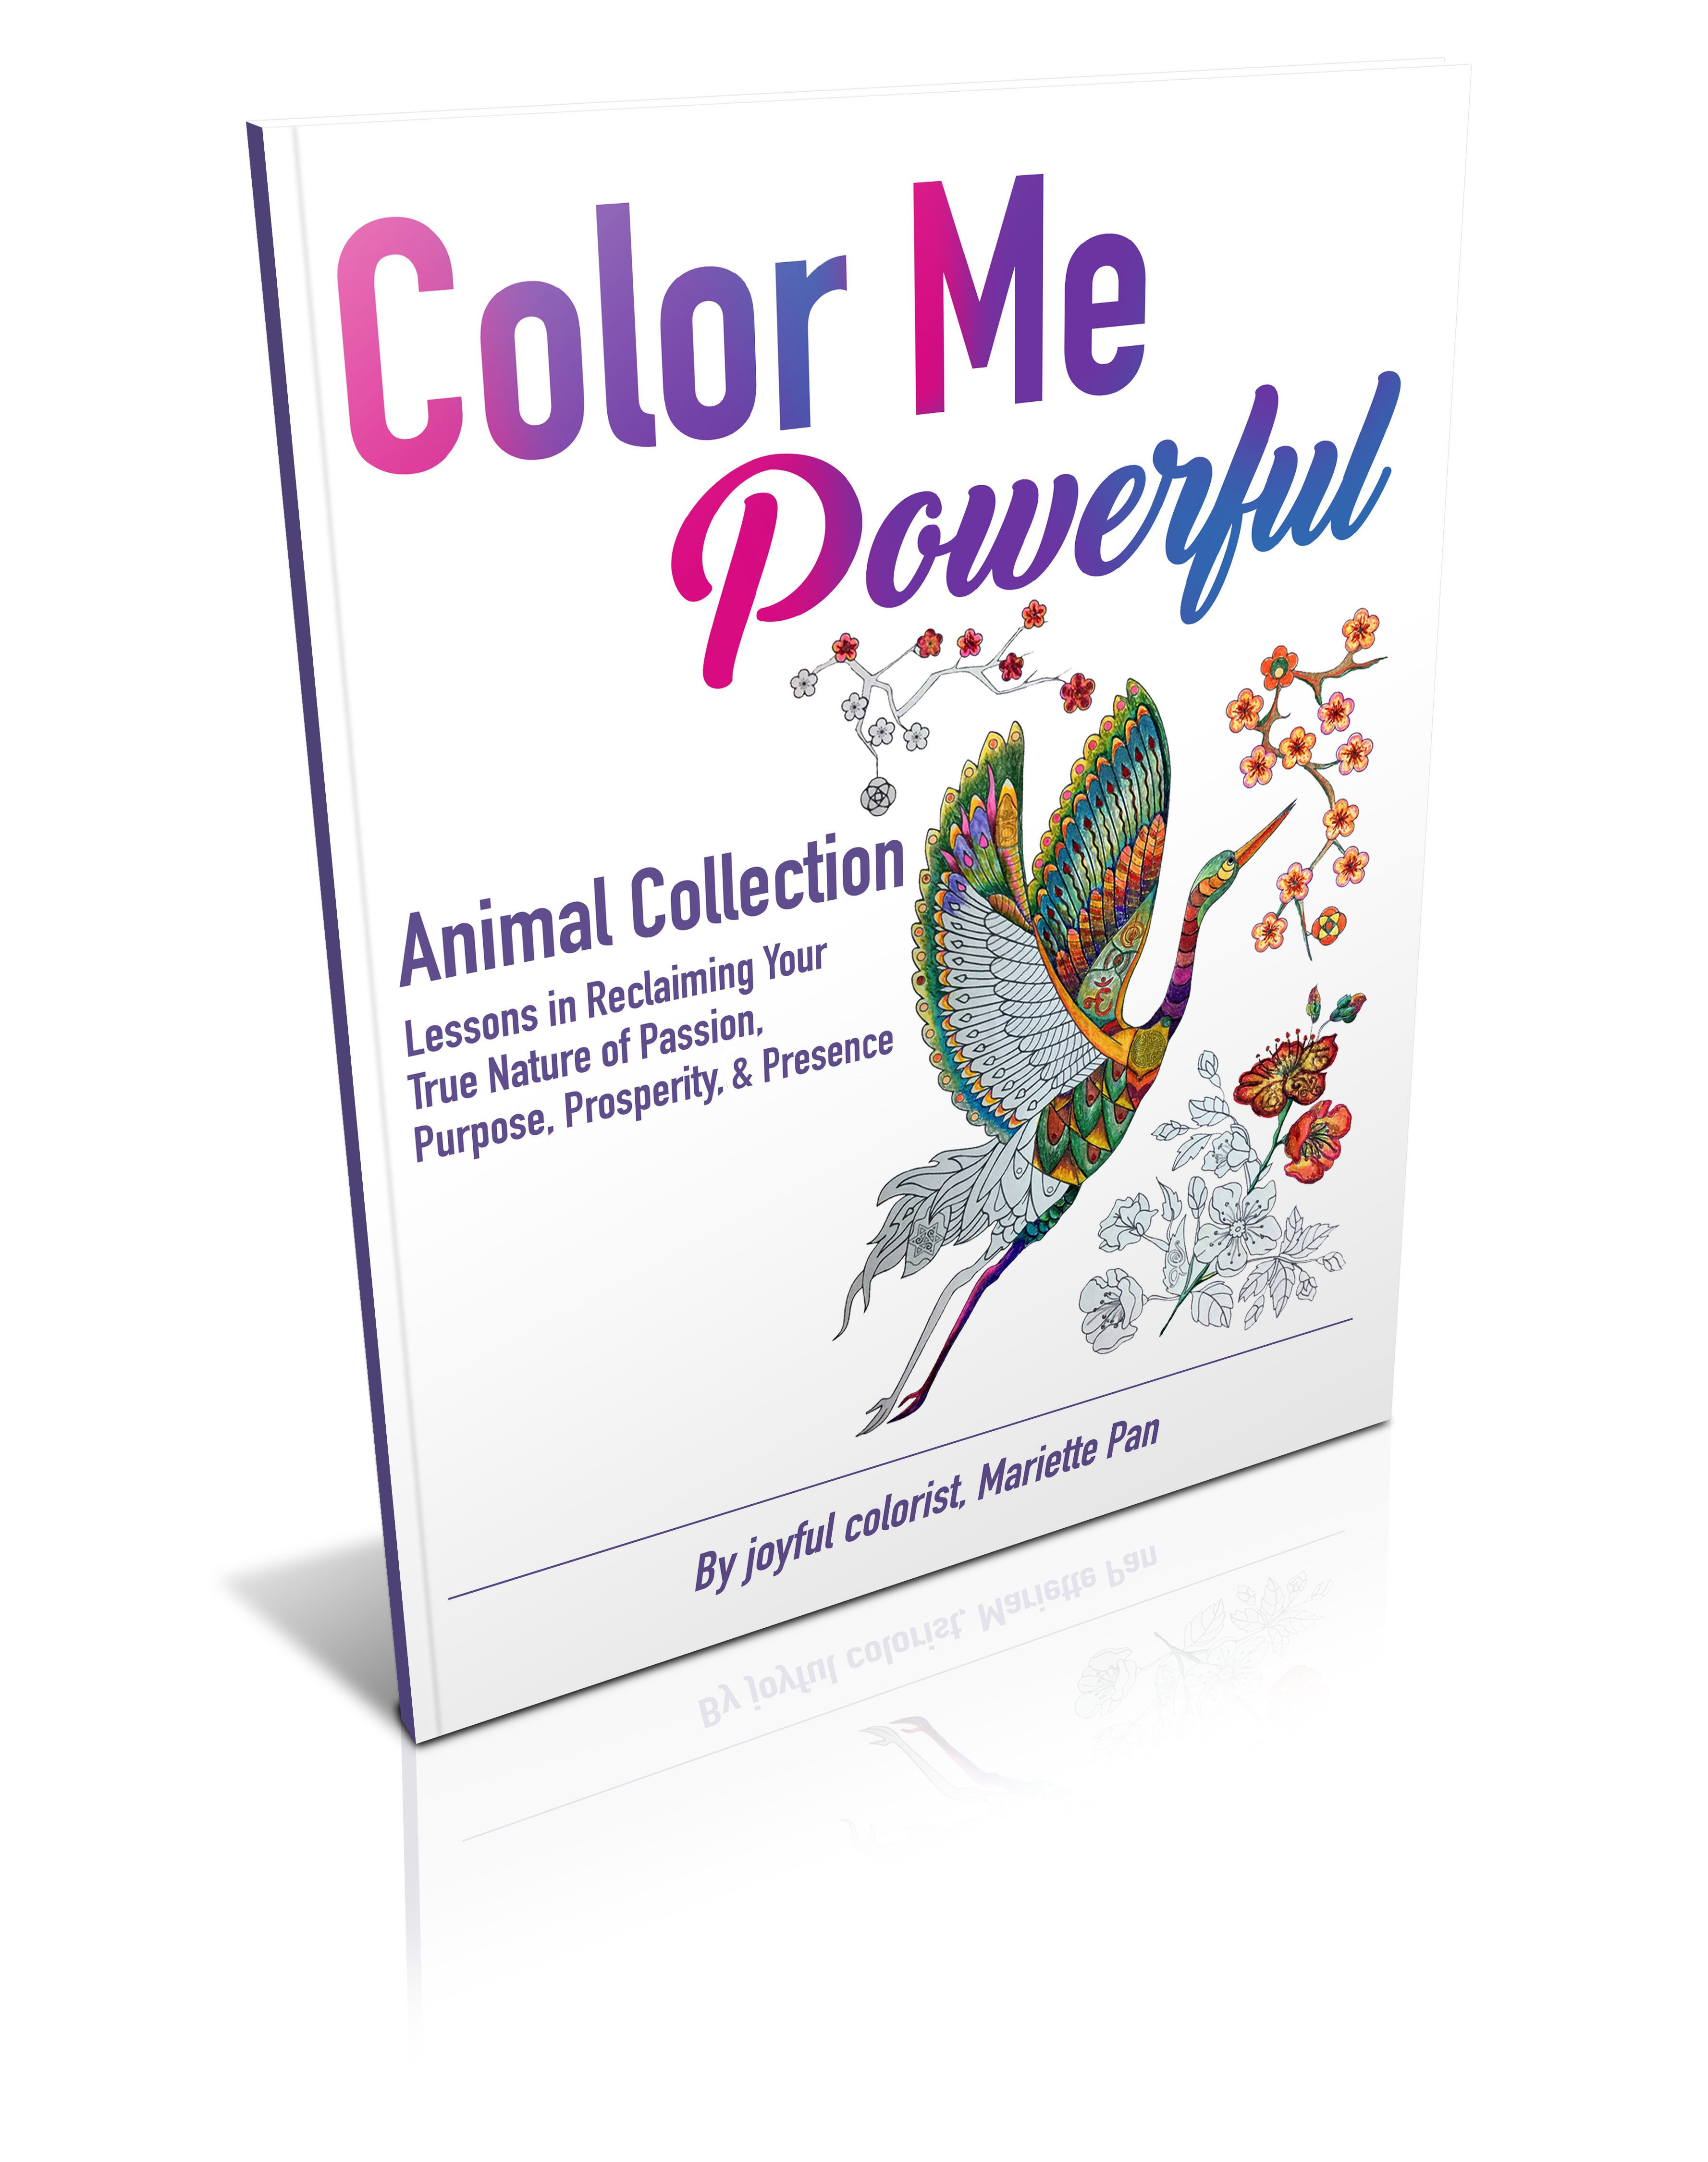 The Color Me Powerful Animal Collection features 26 unique and empowering images of incredibly detailed, spirit animals for you to print and color! Each animal includes lessons in various facets of your I Am soul essence.